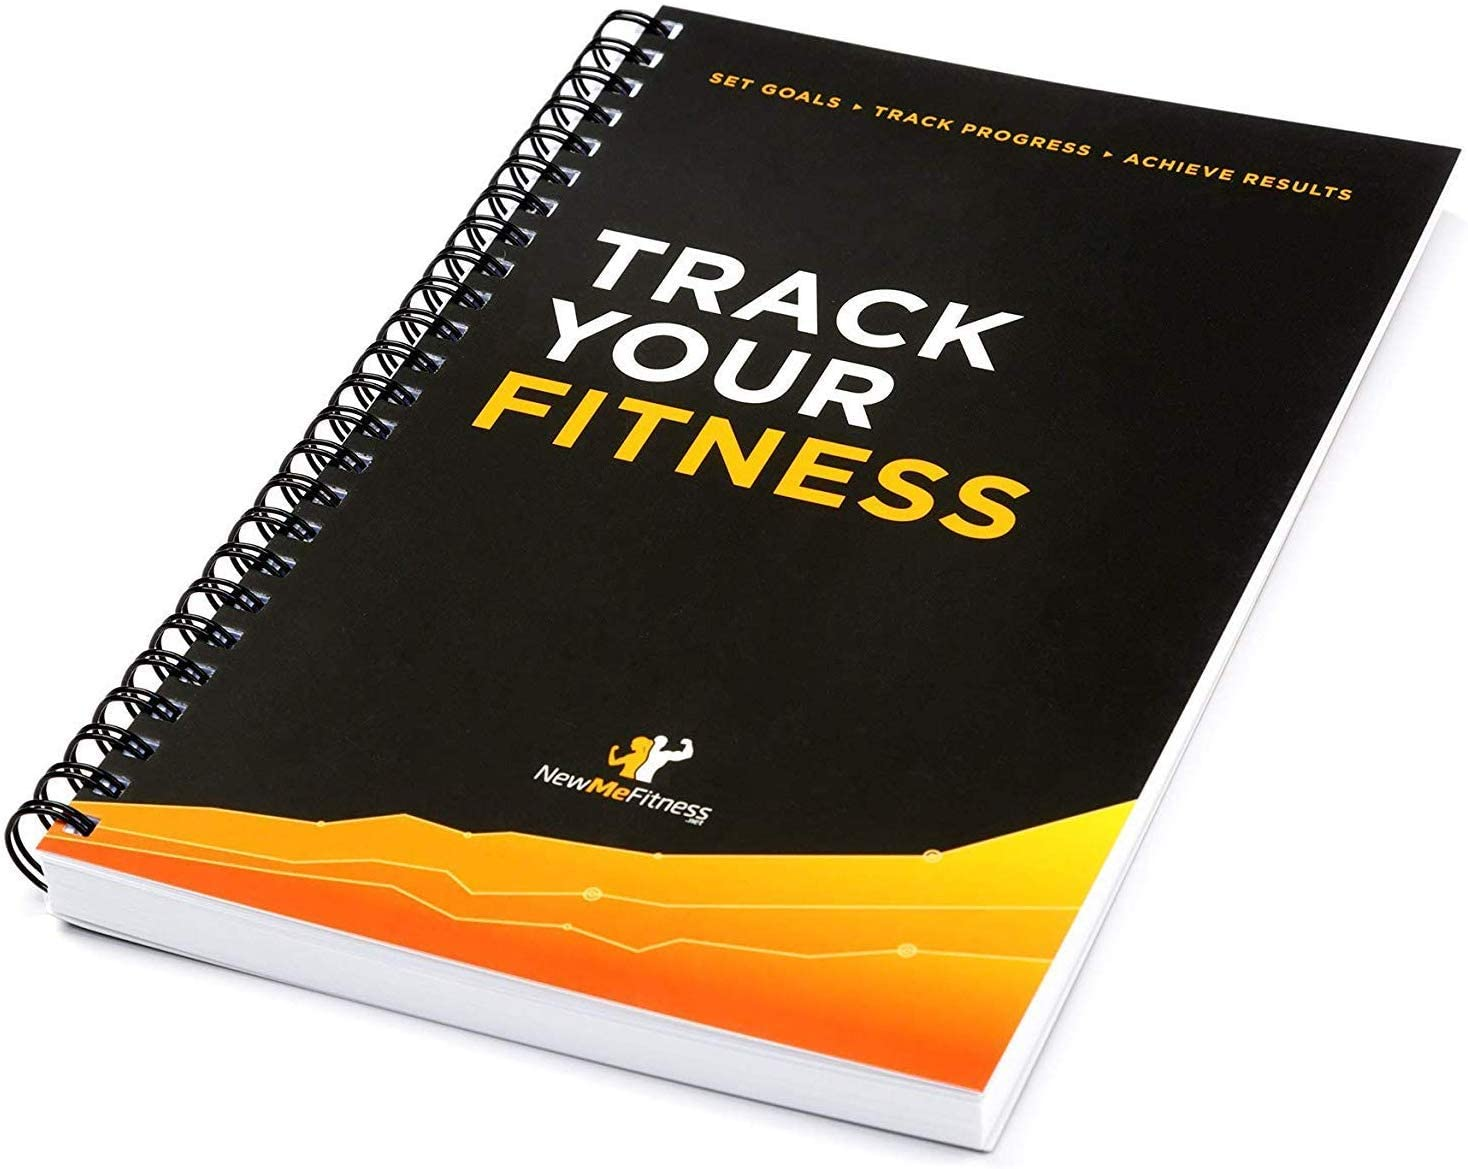 Workout Log Book & Fitness Journal - 25-Week Designed by Experts, w/Illustrations : Track Gym, Bodybuilding & Crossfit Progress - Sturdy Binding, Thick Pages & Laminated, Protected Cover 1-Pack : Sports & Outdoors